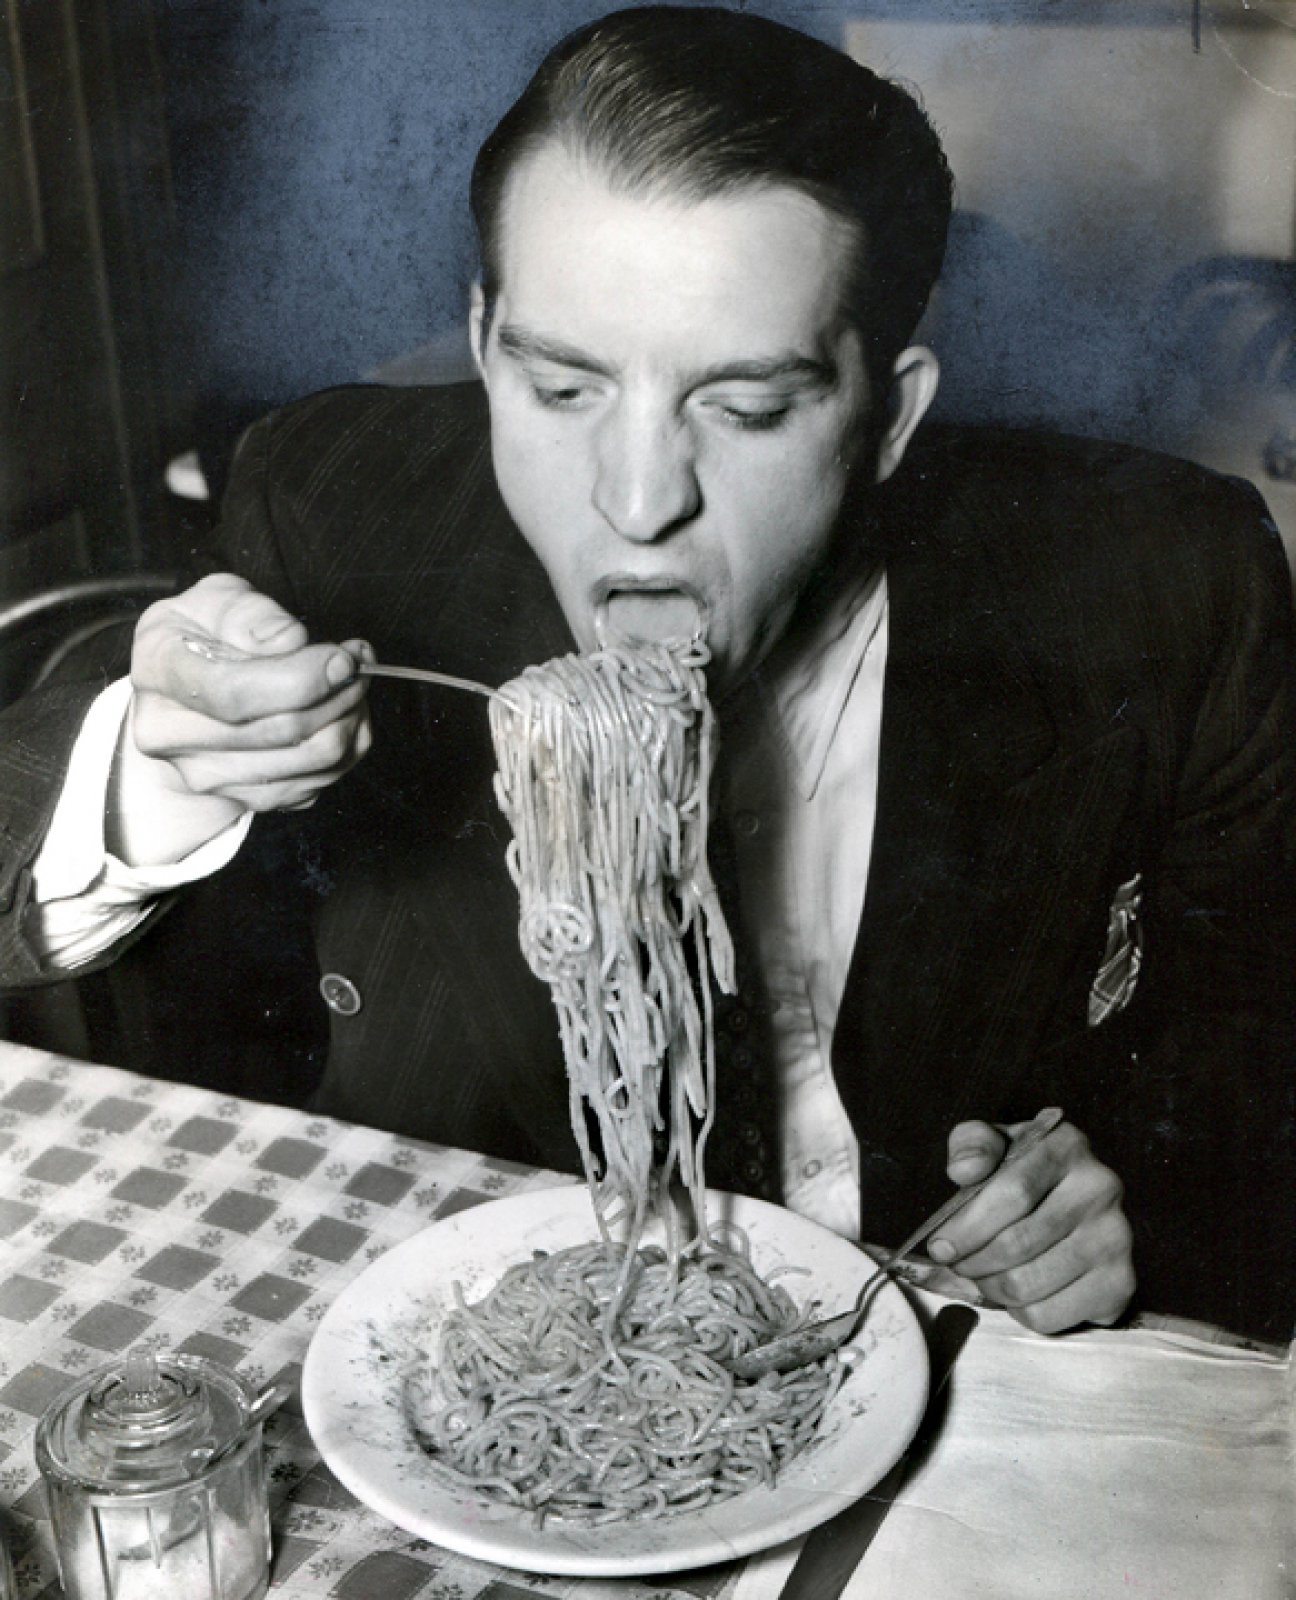 Phillip J. Stazzone is on WPA and Enjoys His Favorite Food as He's Heard That the Army Doesn't Go in Very Strong for Serving Spaghetti, 1940 © Weegee  / International Center of Photography, Courtesy of Ira and Suzanne Richer